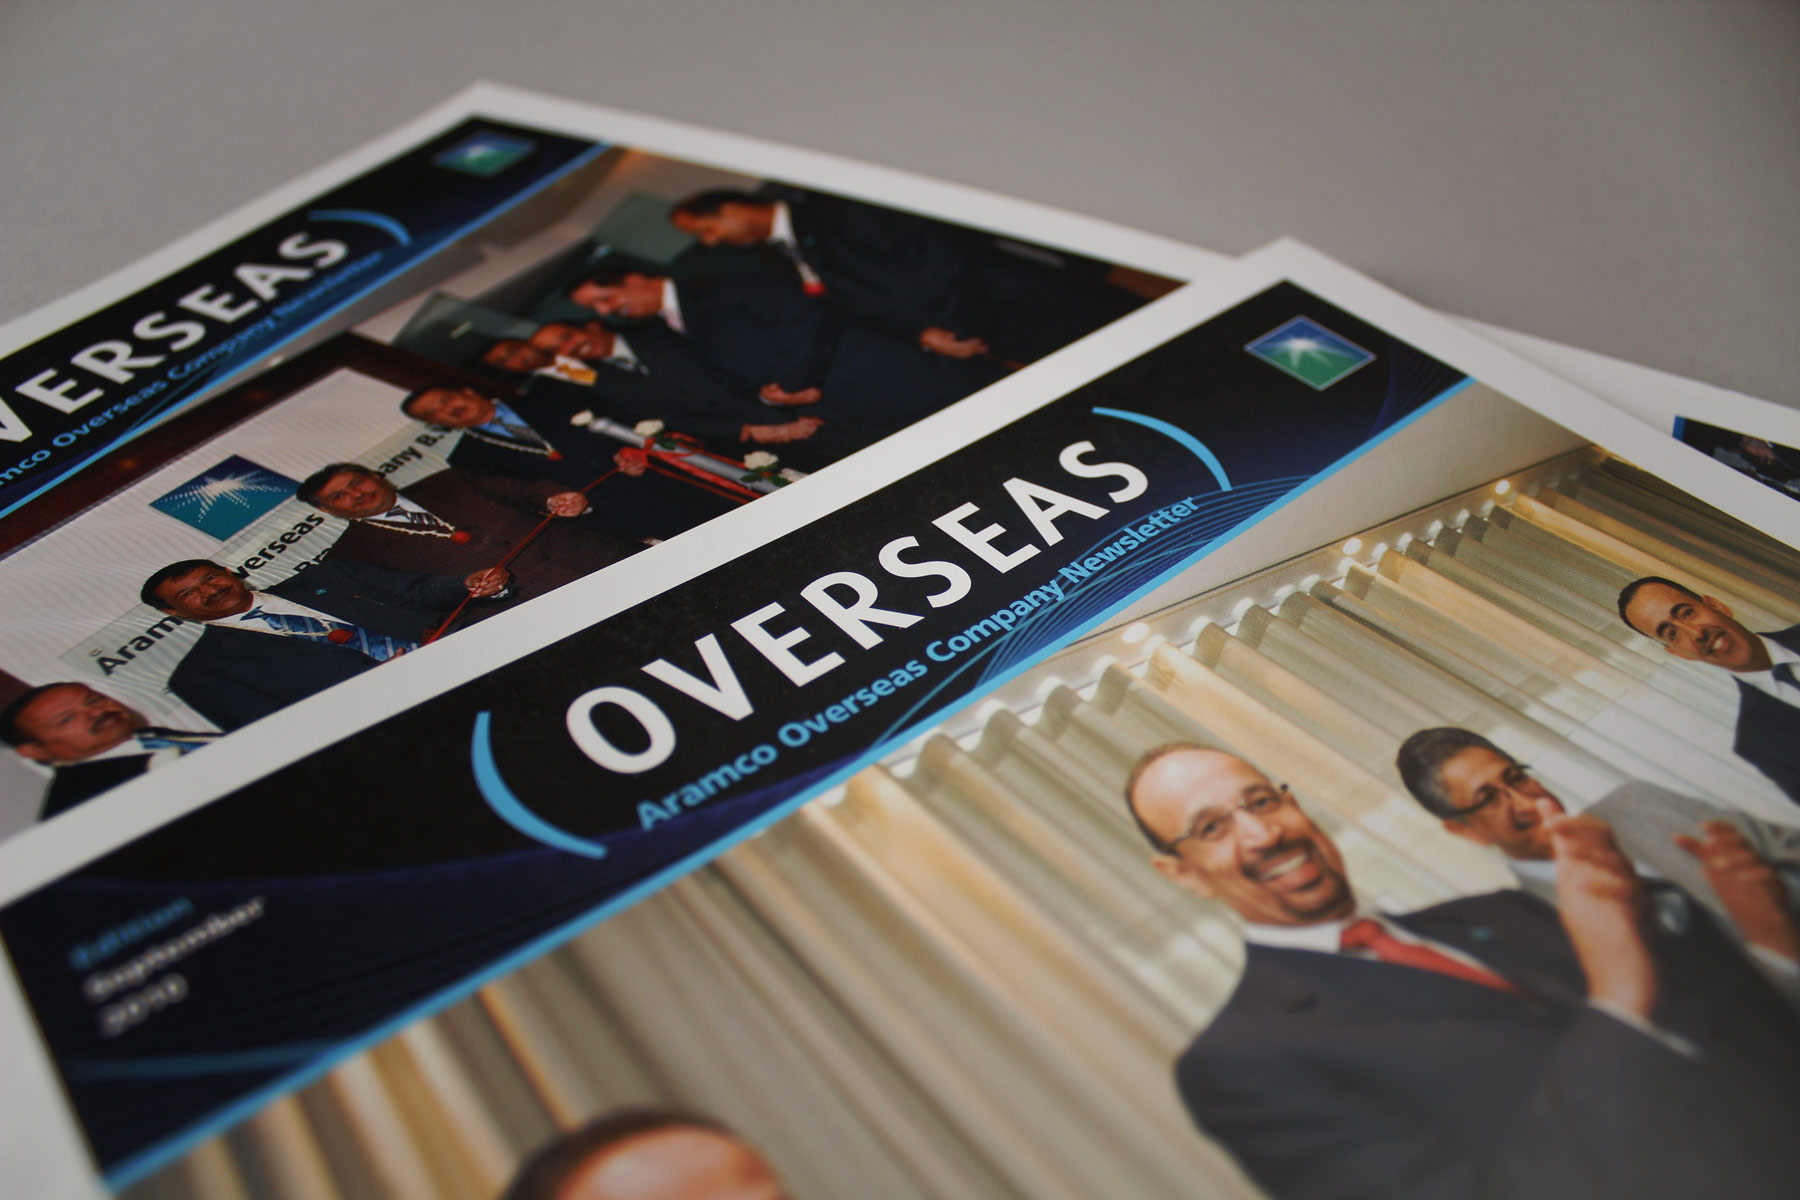 The strong and bold Overseas masthead and cover identity creates strong recall amongst the employees of the business.